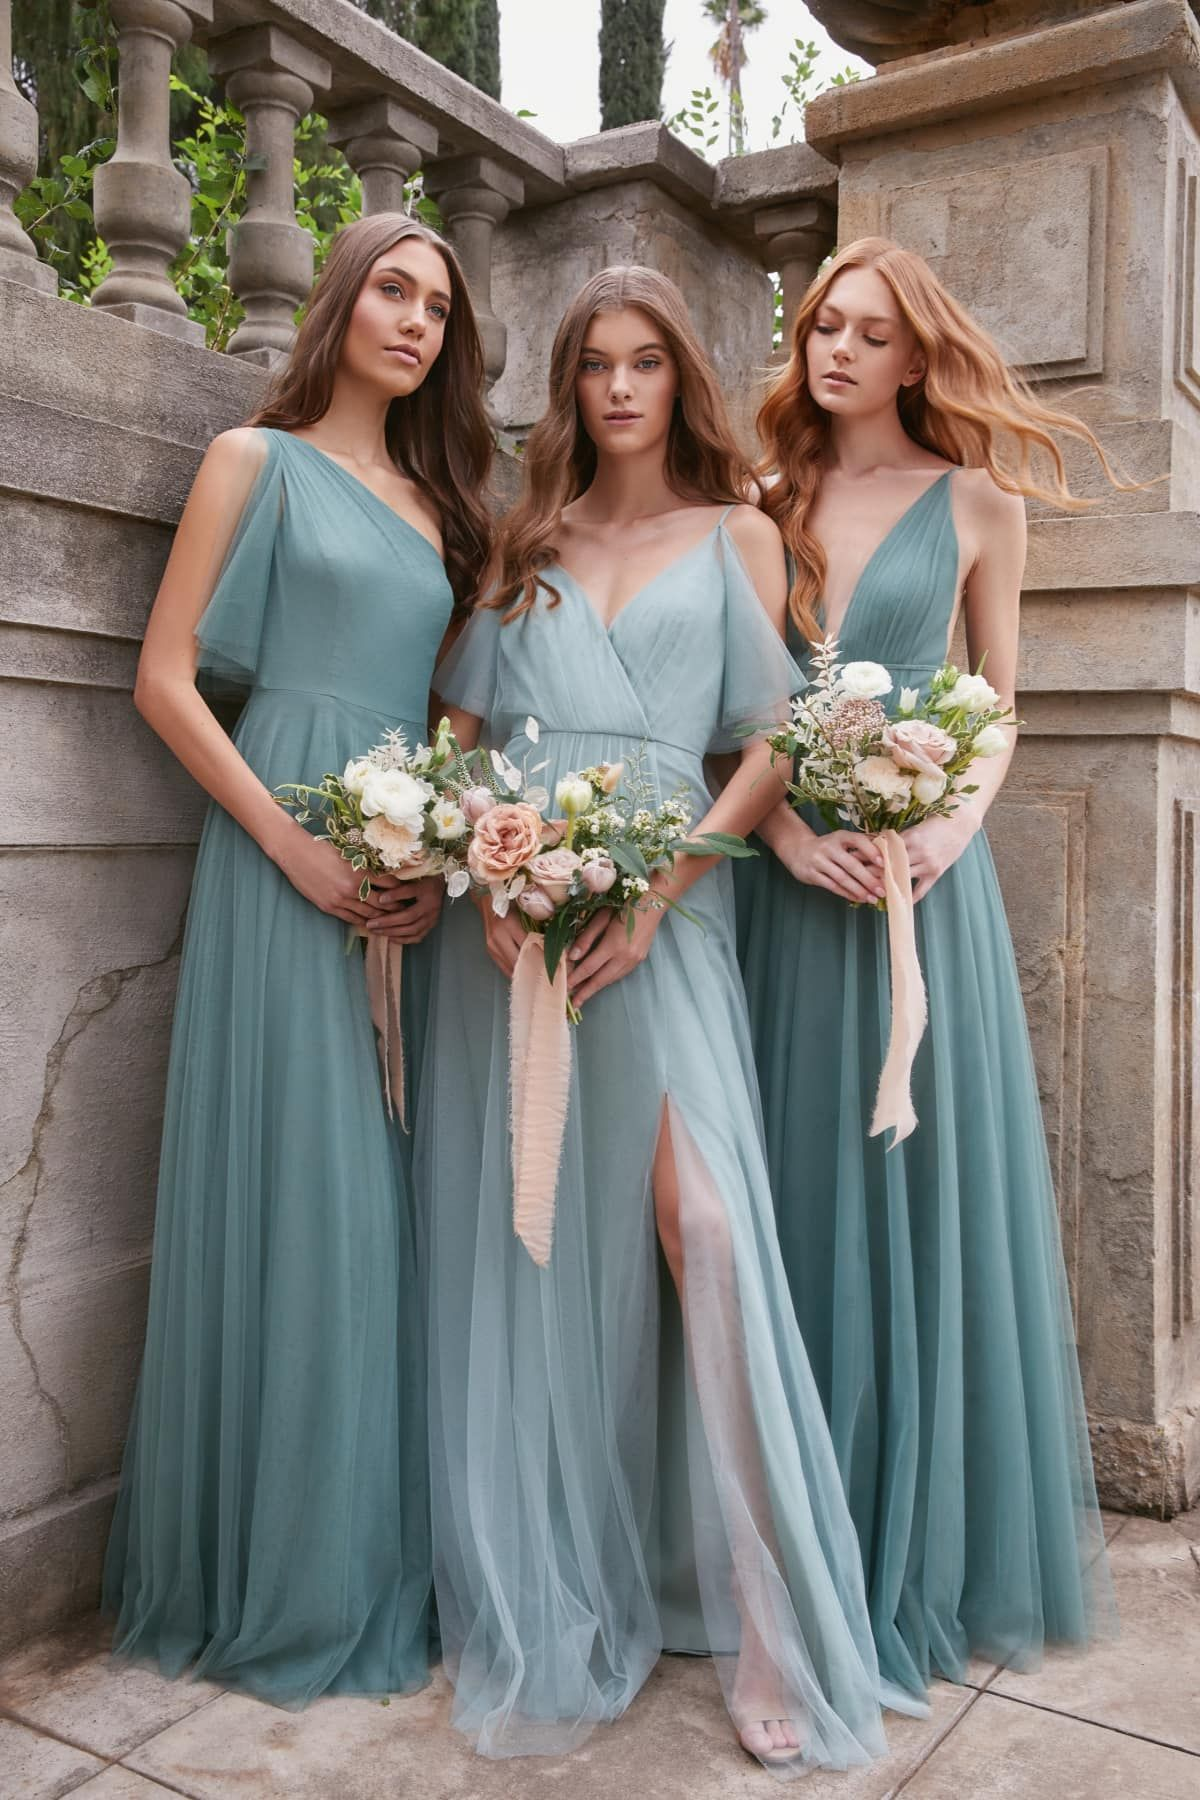 Jenny Yoo Collection Bridesmaid Dresses Spring 2020 Dress For The Wedding In 2020 Teal Bridesmaid Dresses Spring Bridesmaid Dresses Teal Bridesmaid